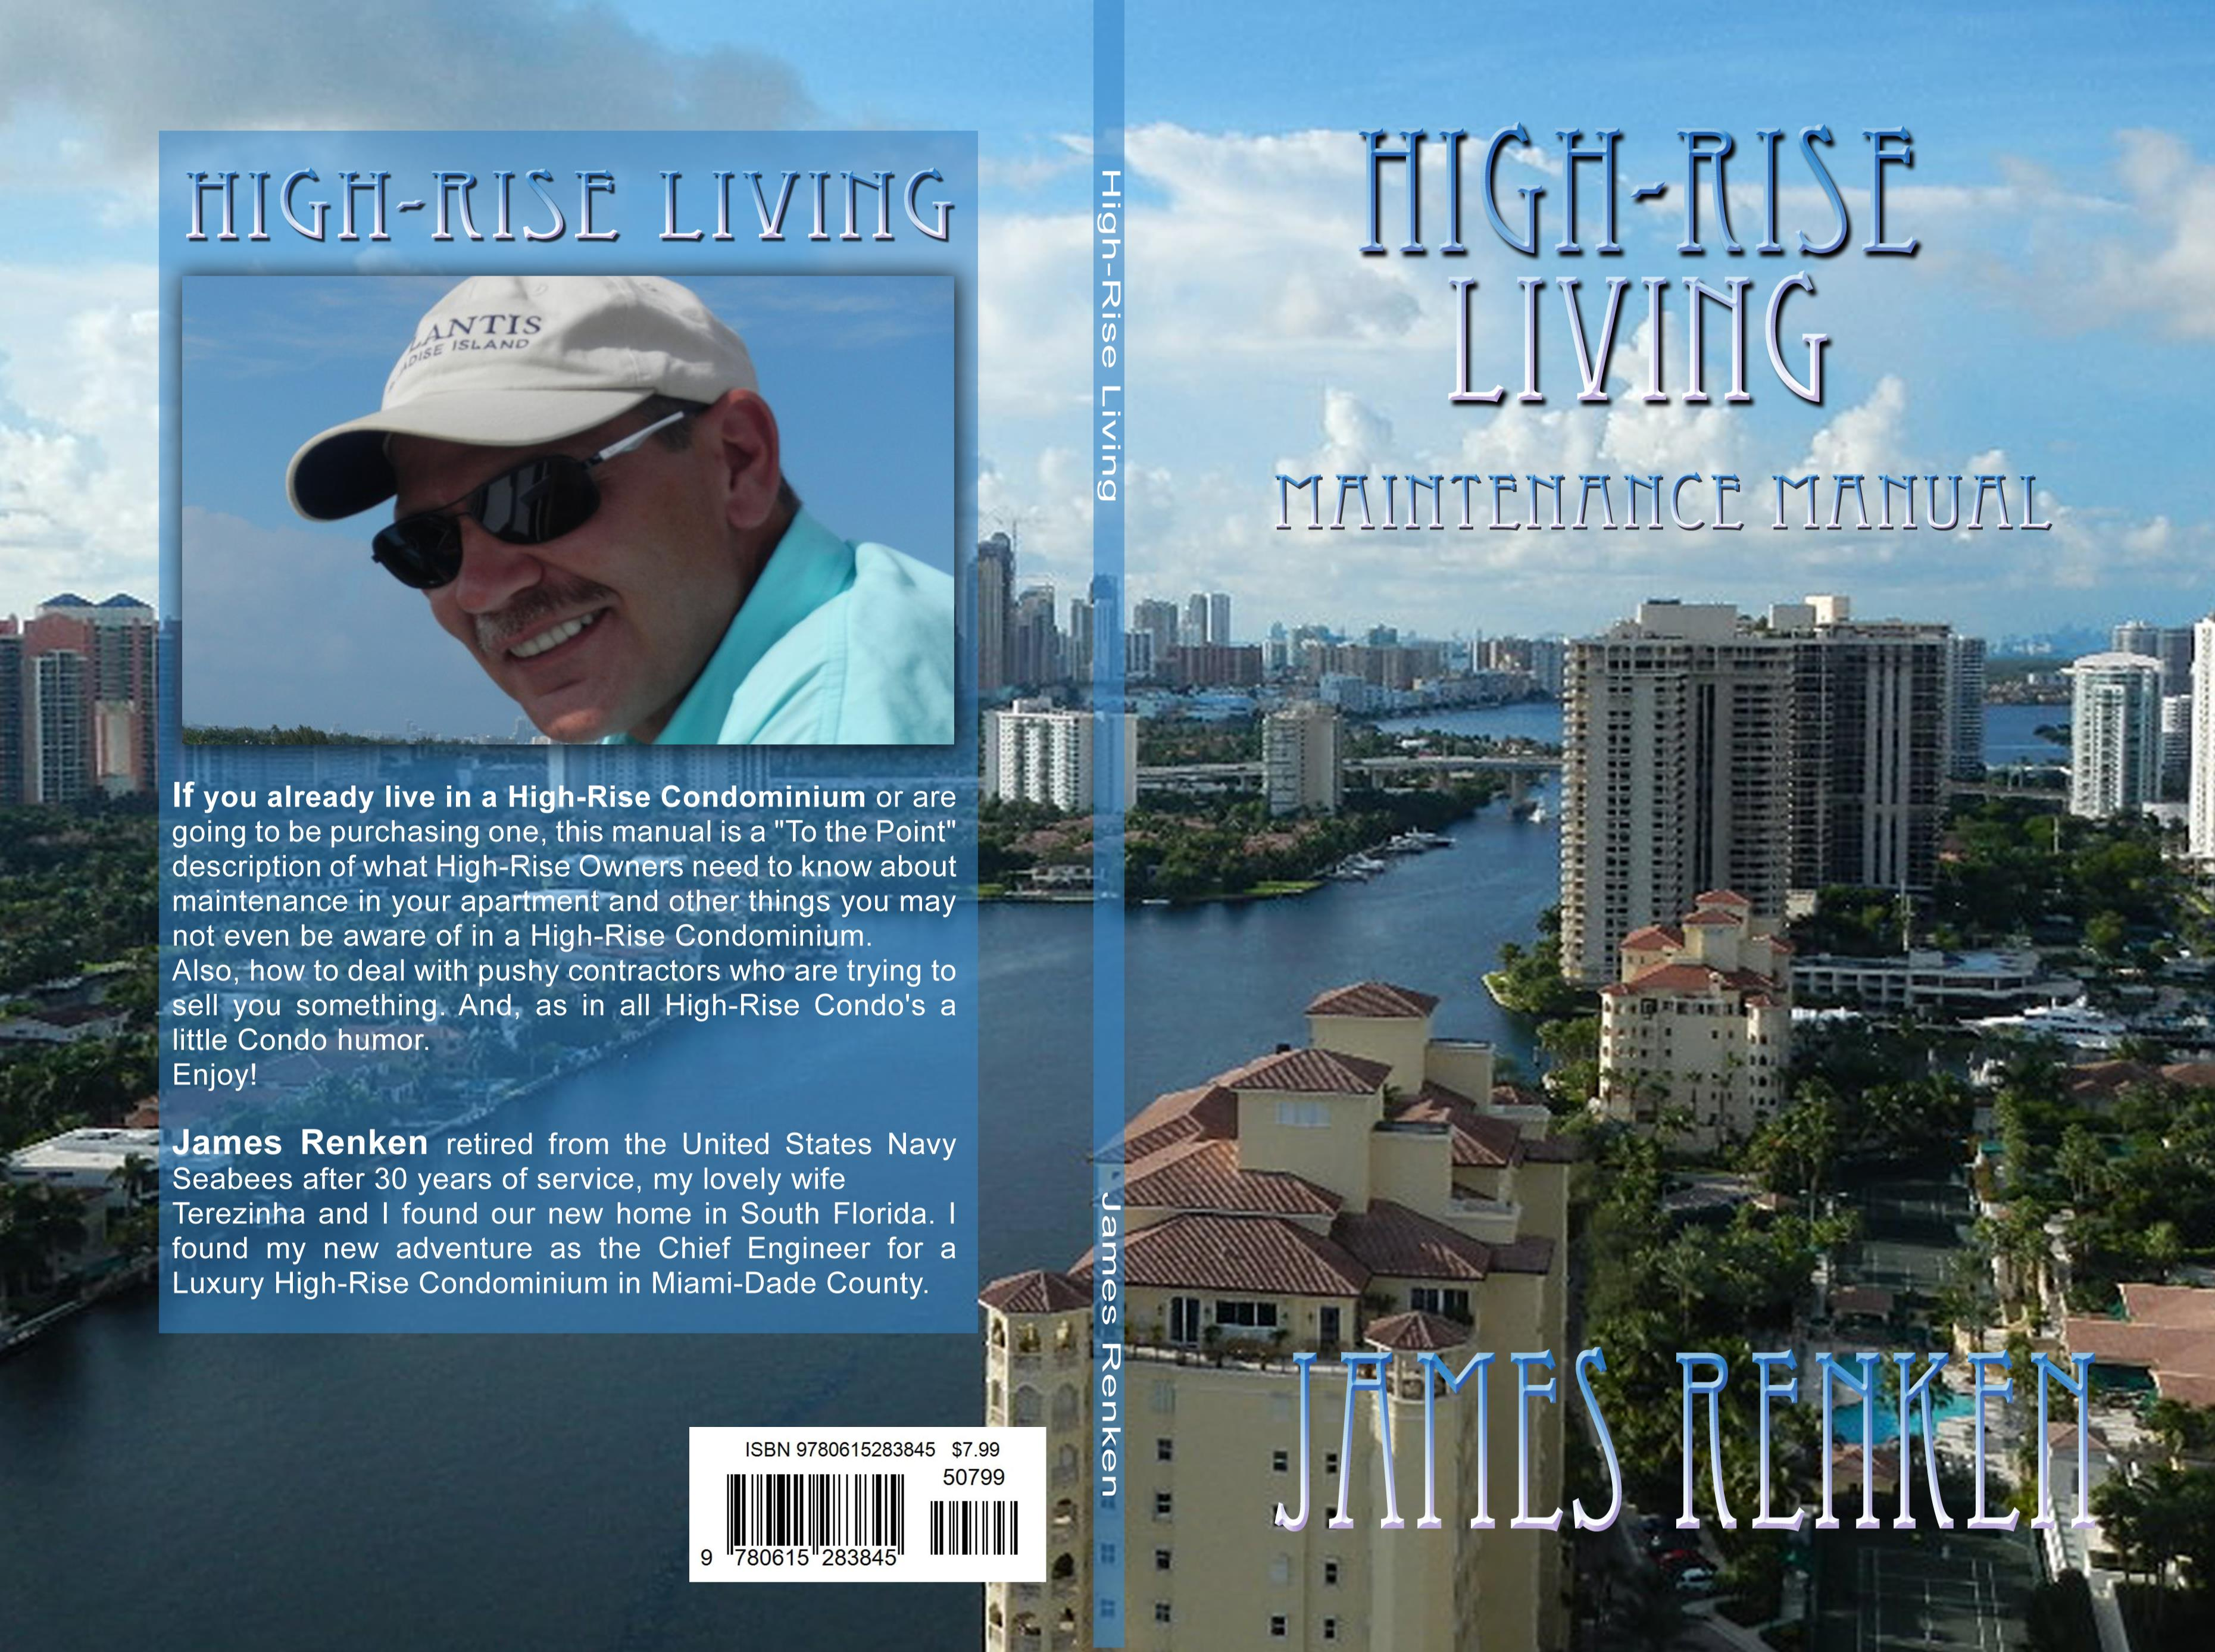 High-Rise Living Maintenance Manual cover image